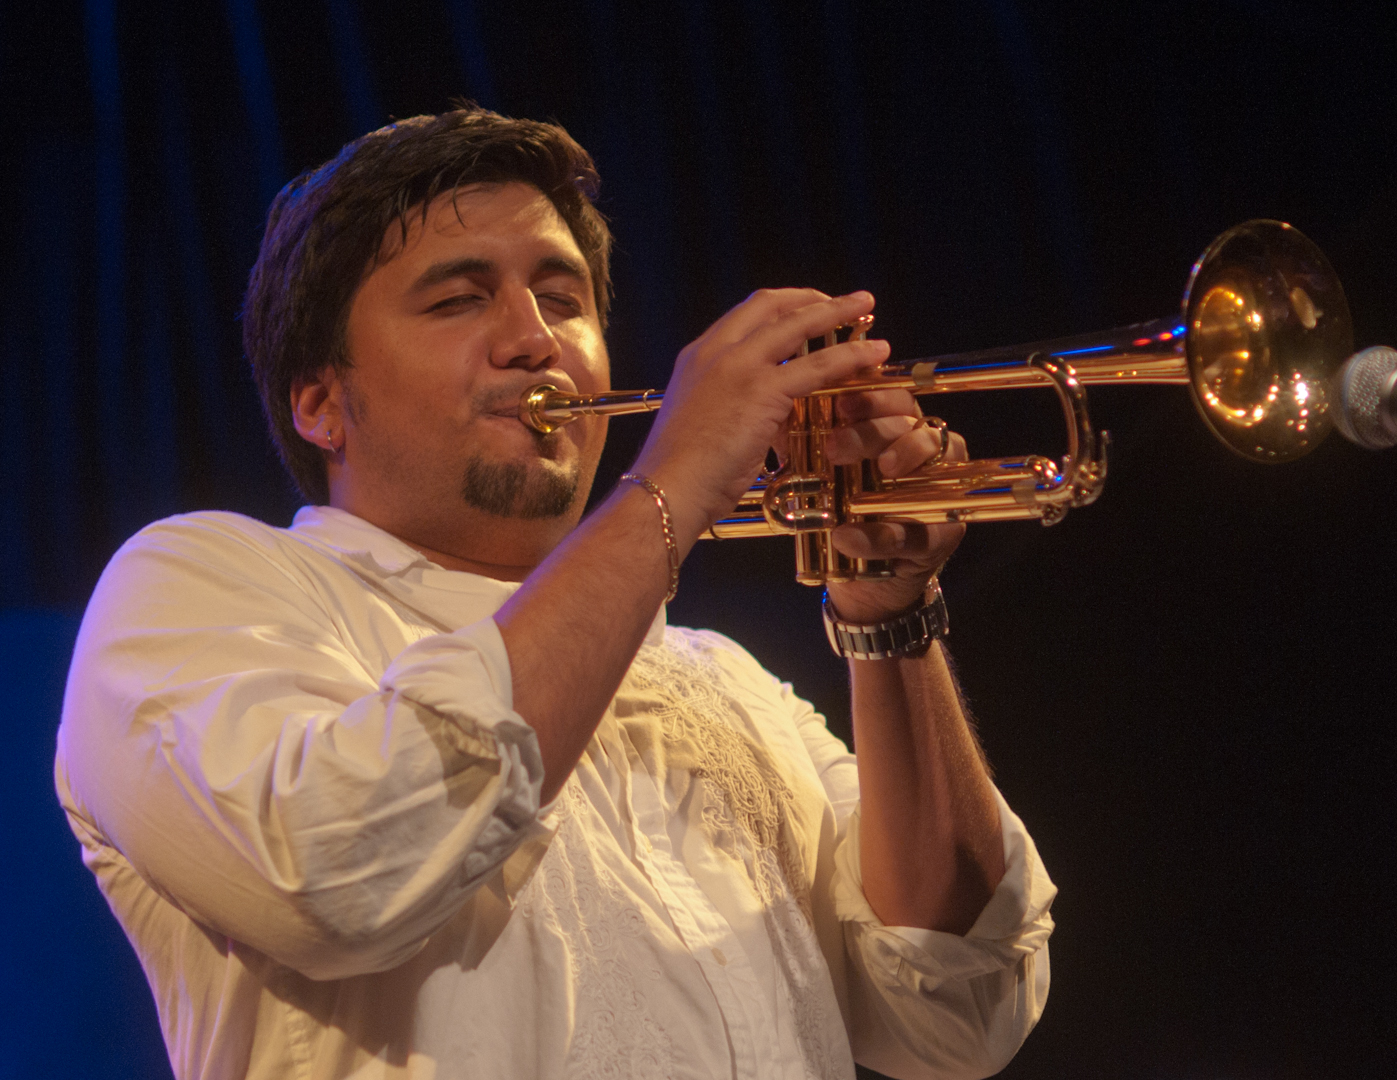 Michael Rodriguez at the Jam Sessions at the Oslo Jazz Festival